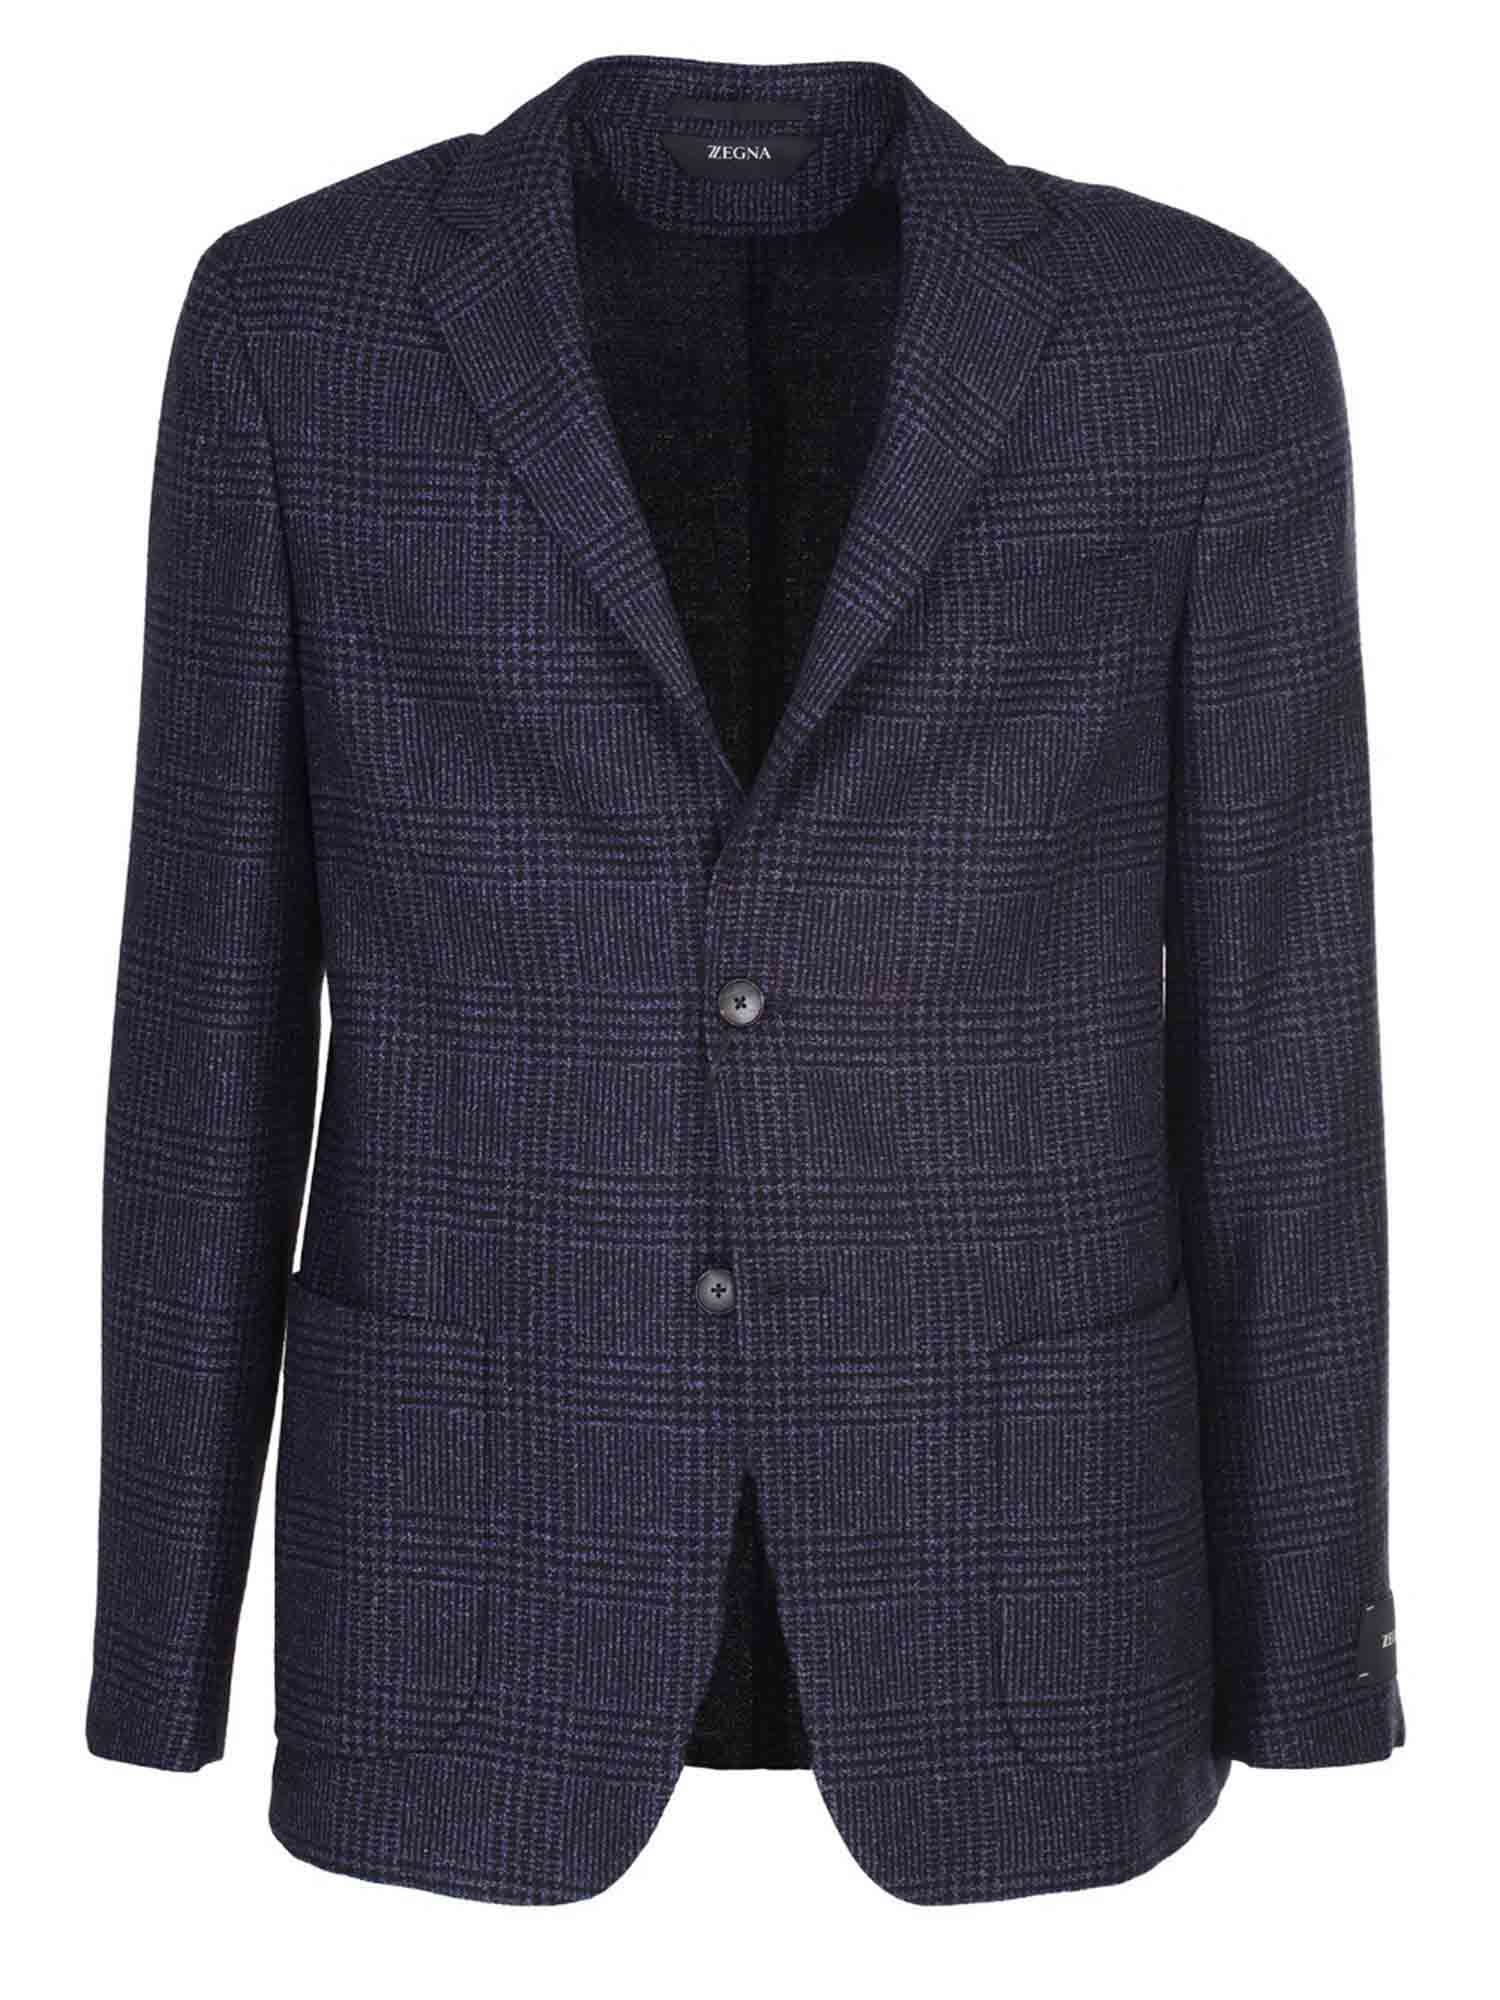 Z Zegna Cottons PRINCE OF WALES JACKET IN BLUE